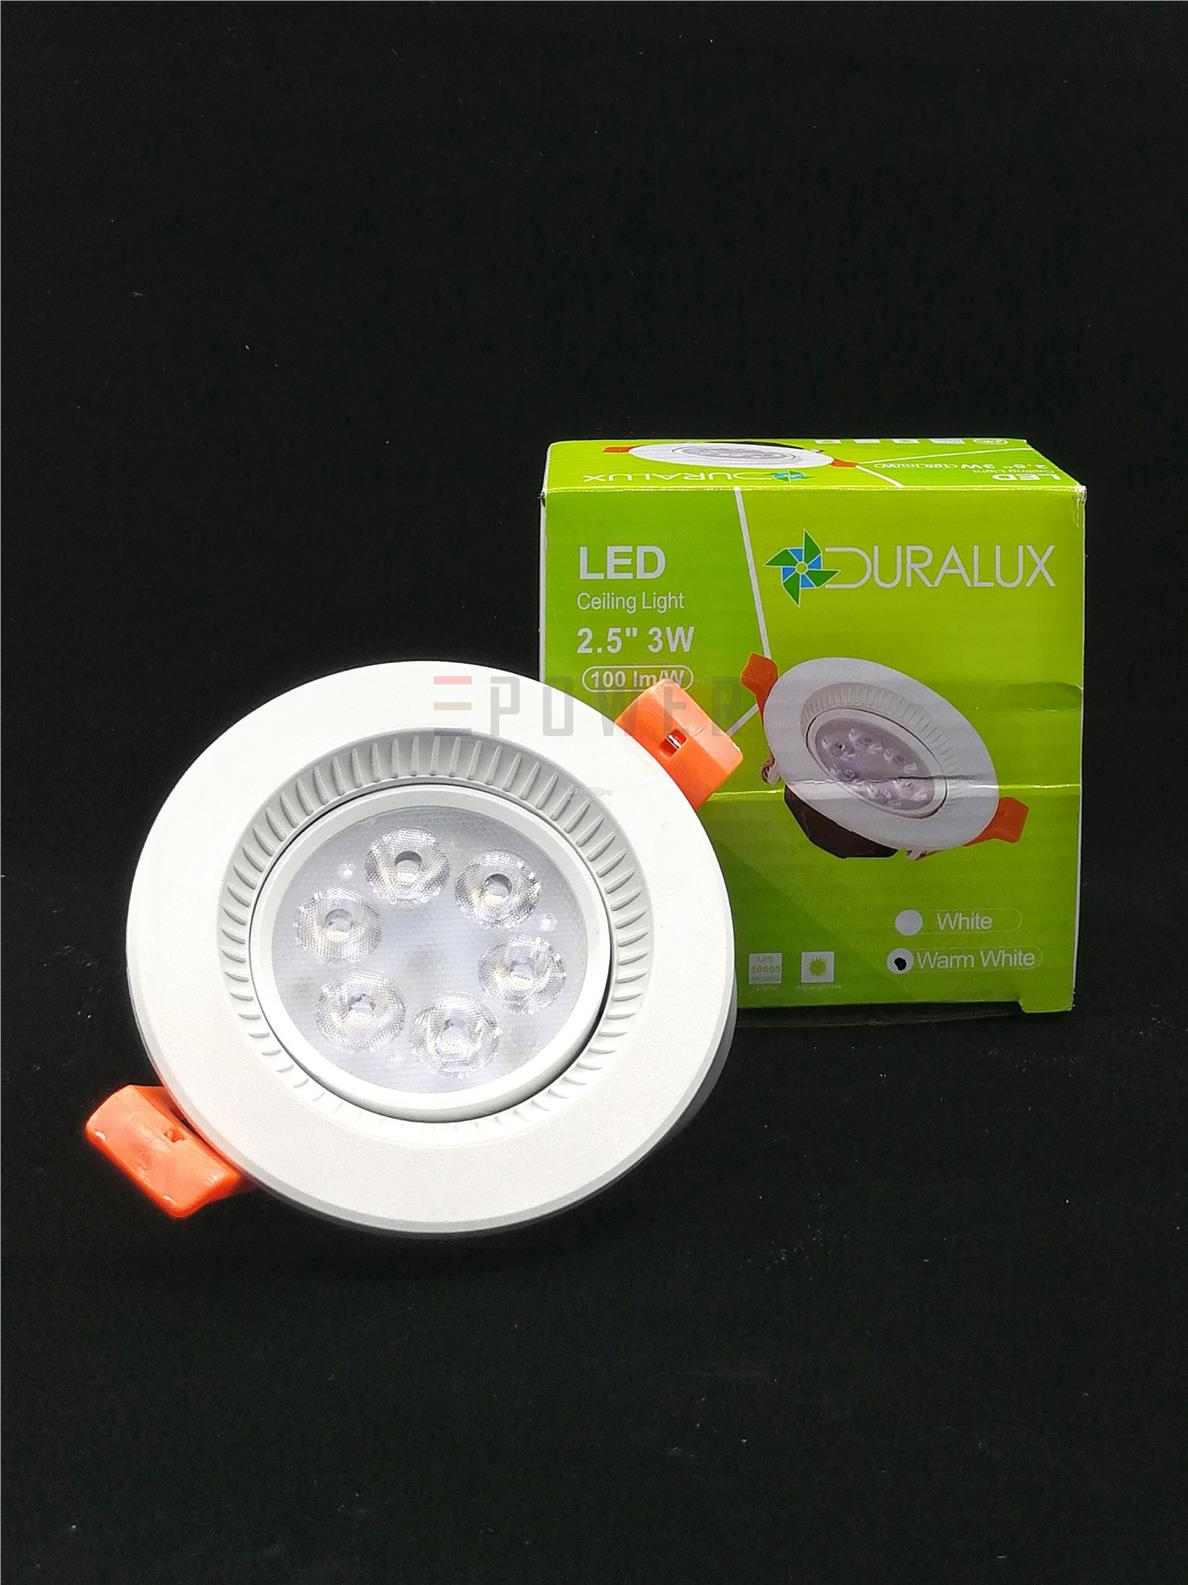 official photos 3a142 8d00e DURALUX/FONEMAX 3W 2.5' LED EYEBALL CEILING LIGHT Daylight / Warmwhite